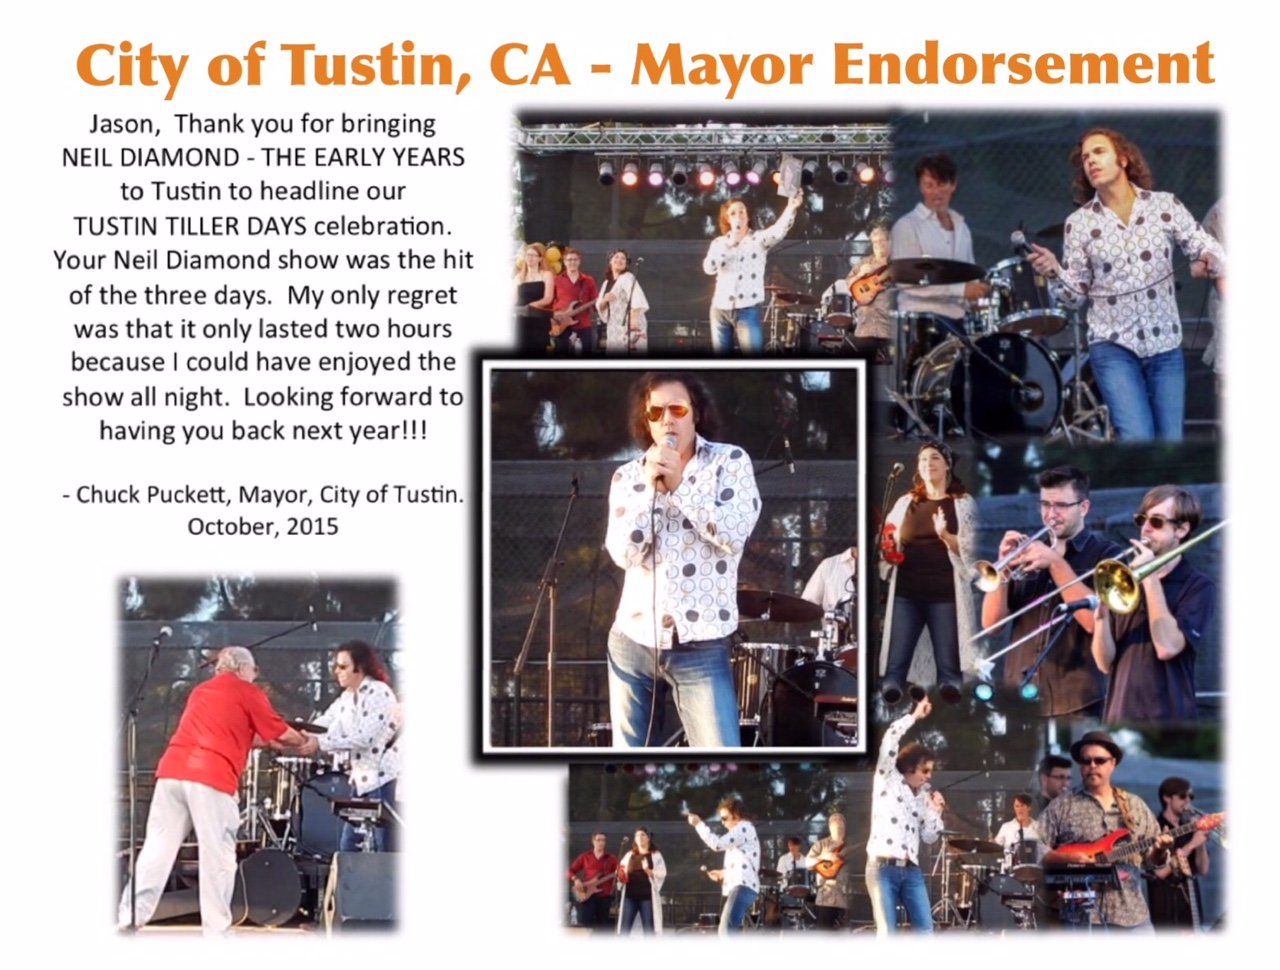 Neil Diamond - The Early Years - Mayor of Tustin Endorsement